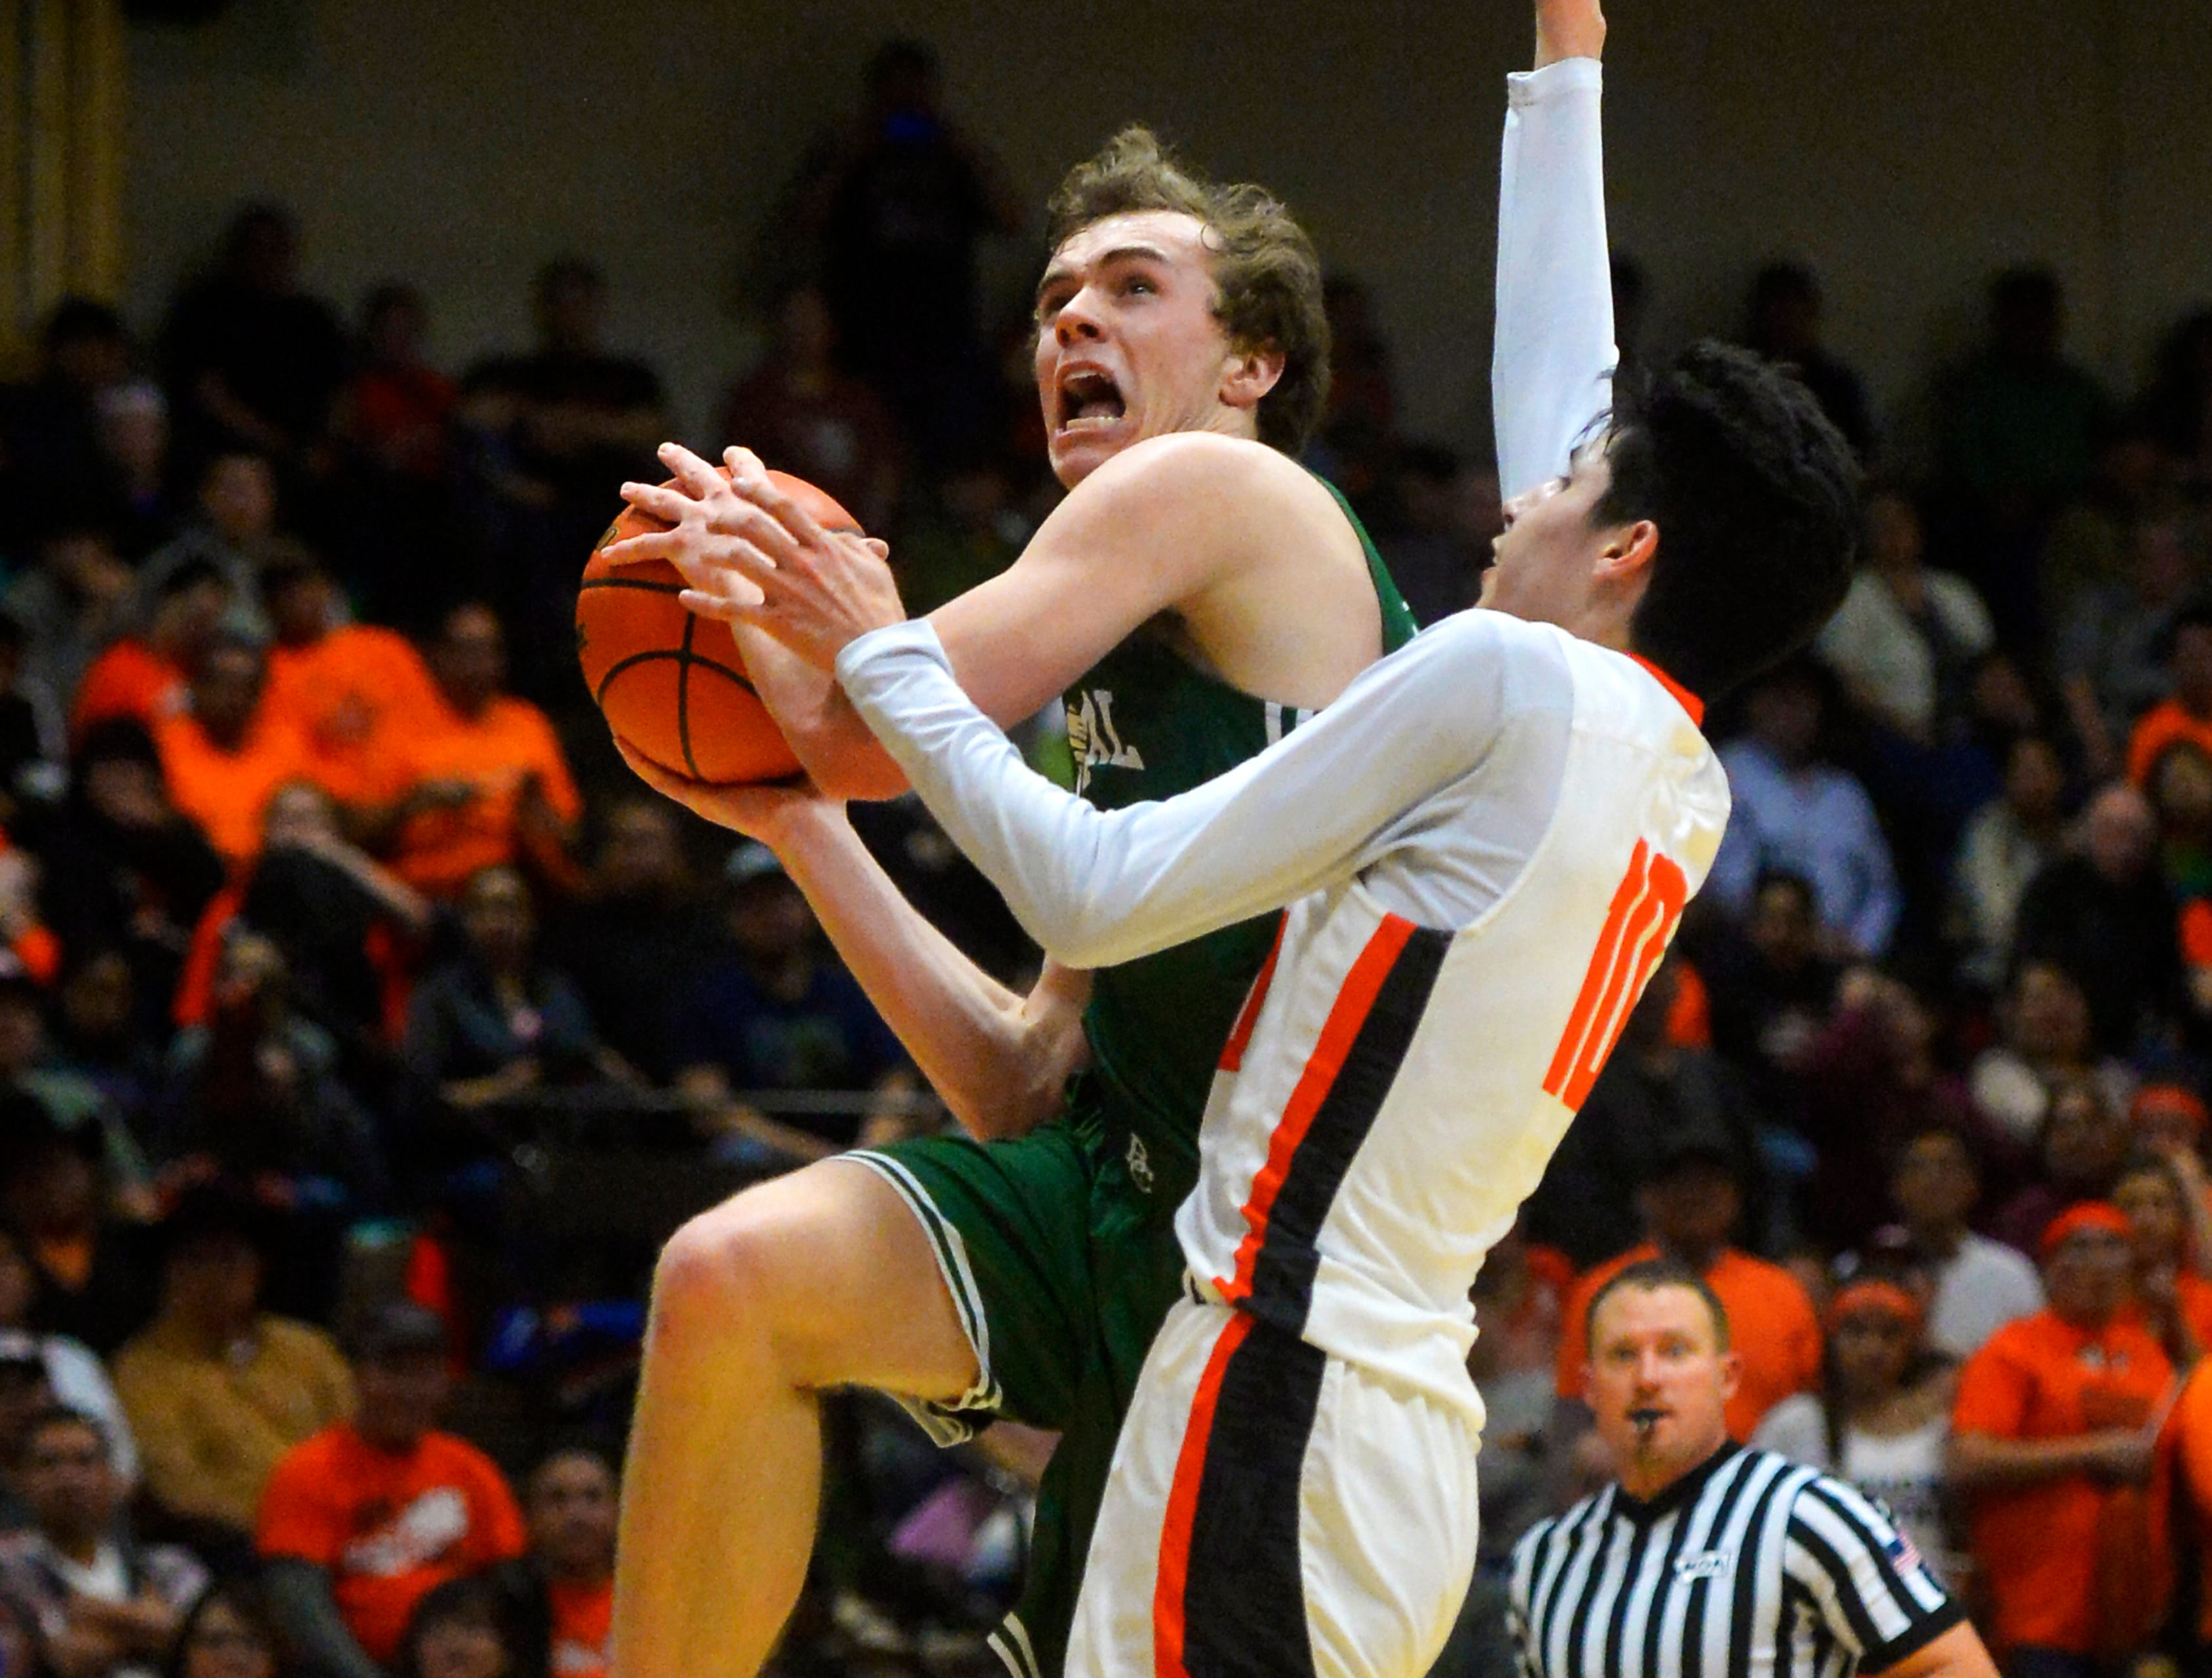 Billings Central's Joe Byorth draws contact from Hardin's Trae Hugs on a shot attempt in the title game of the State Class A Basketball Tournament in the Four Seasons Arena, Saturday.